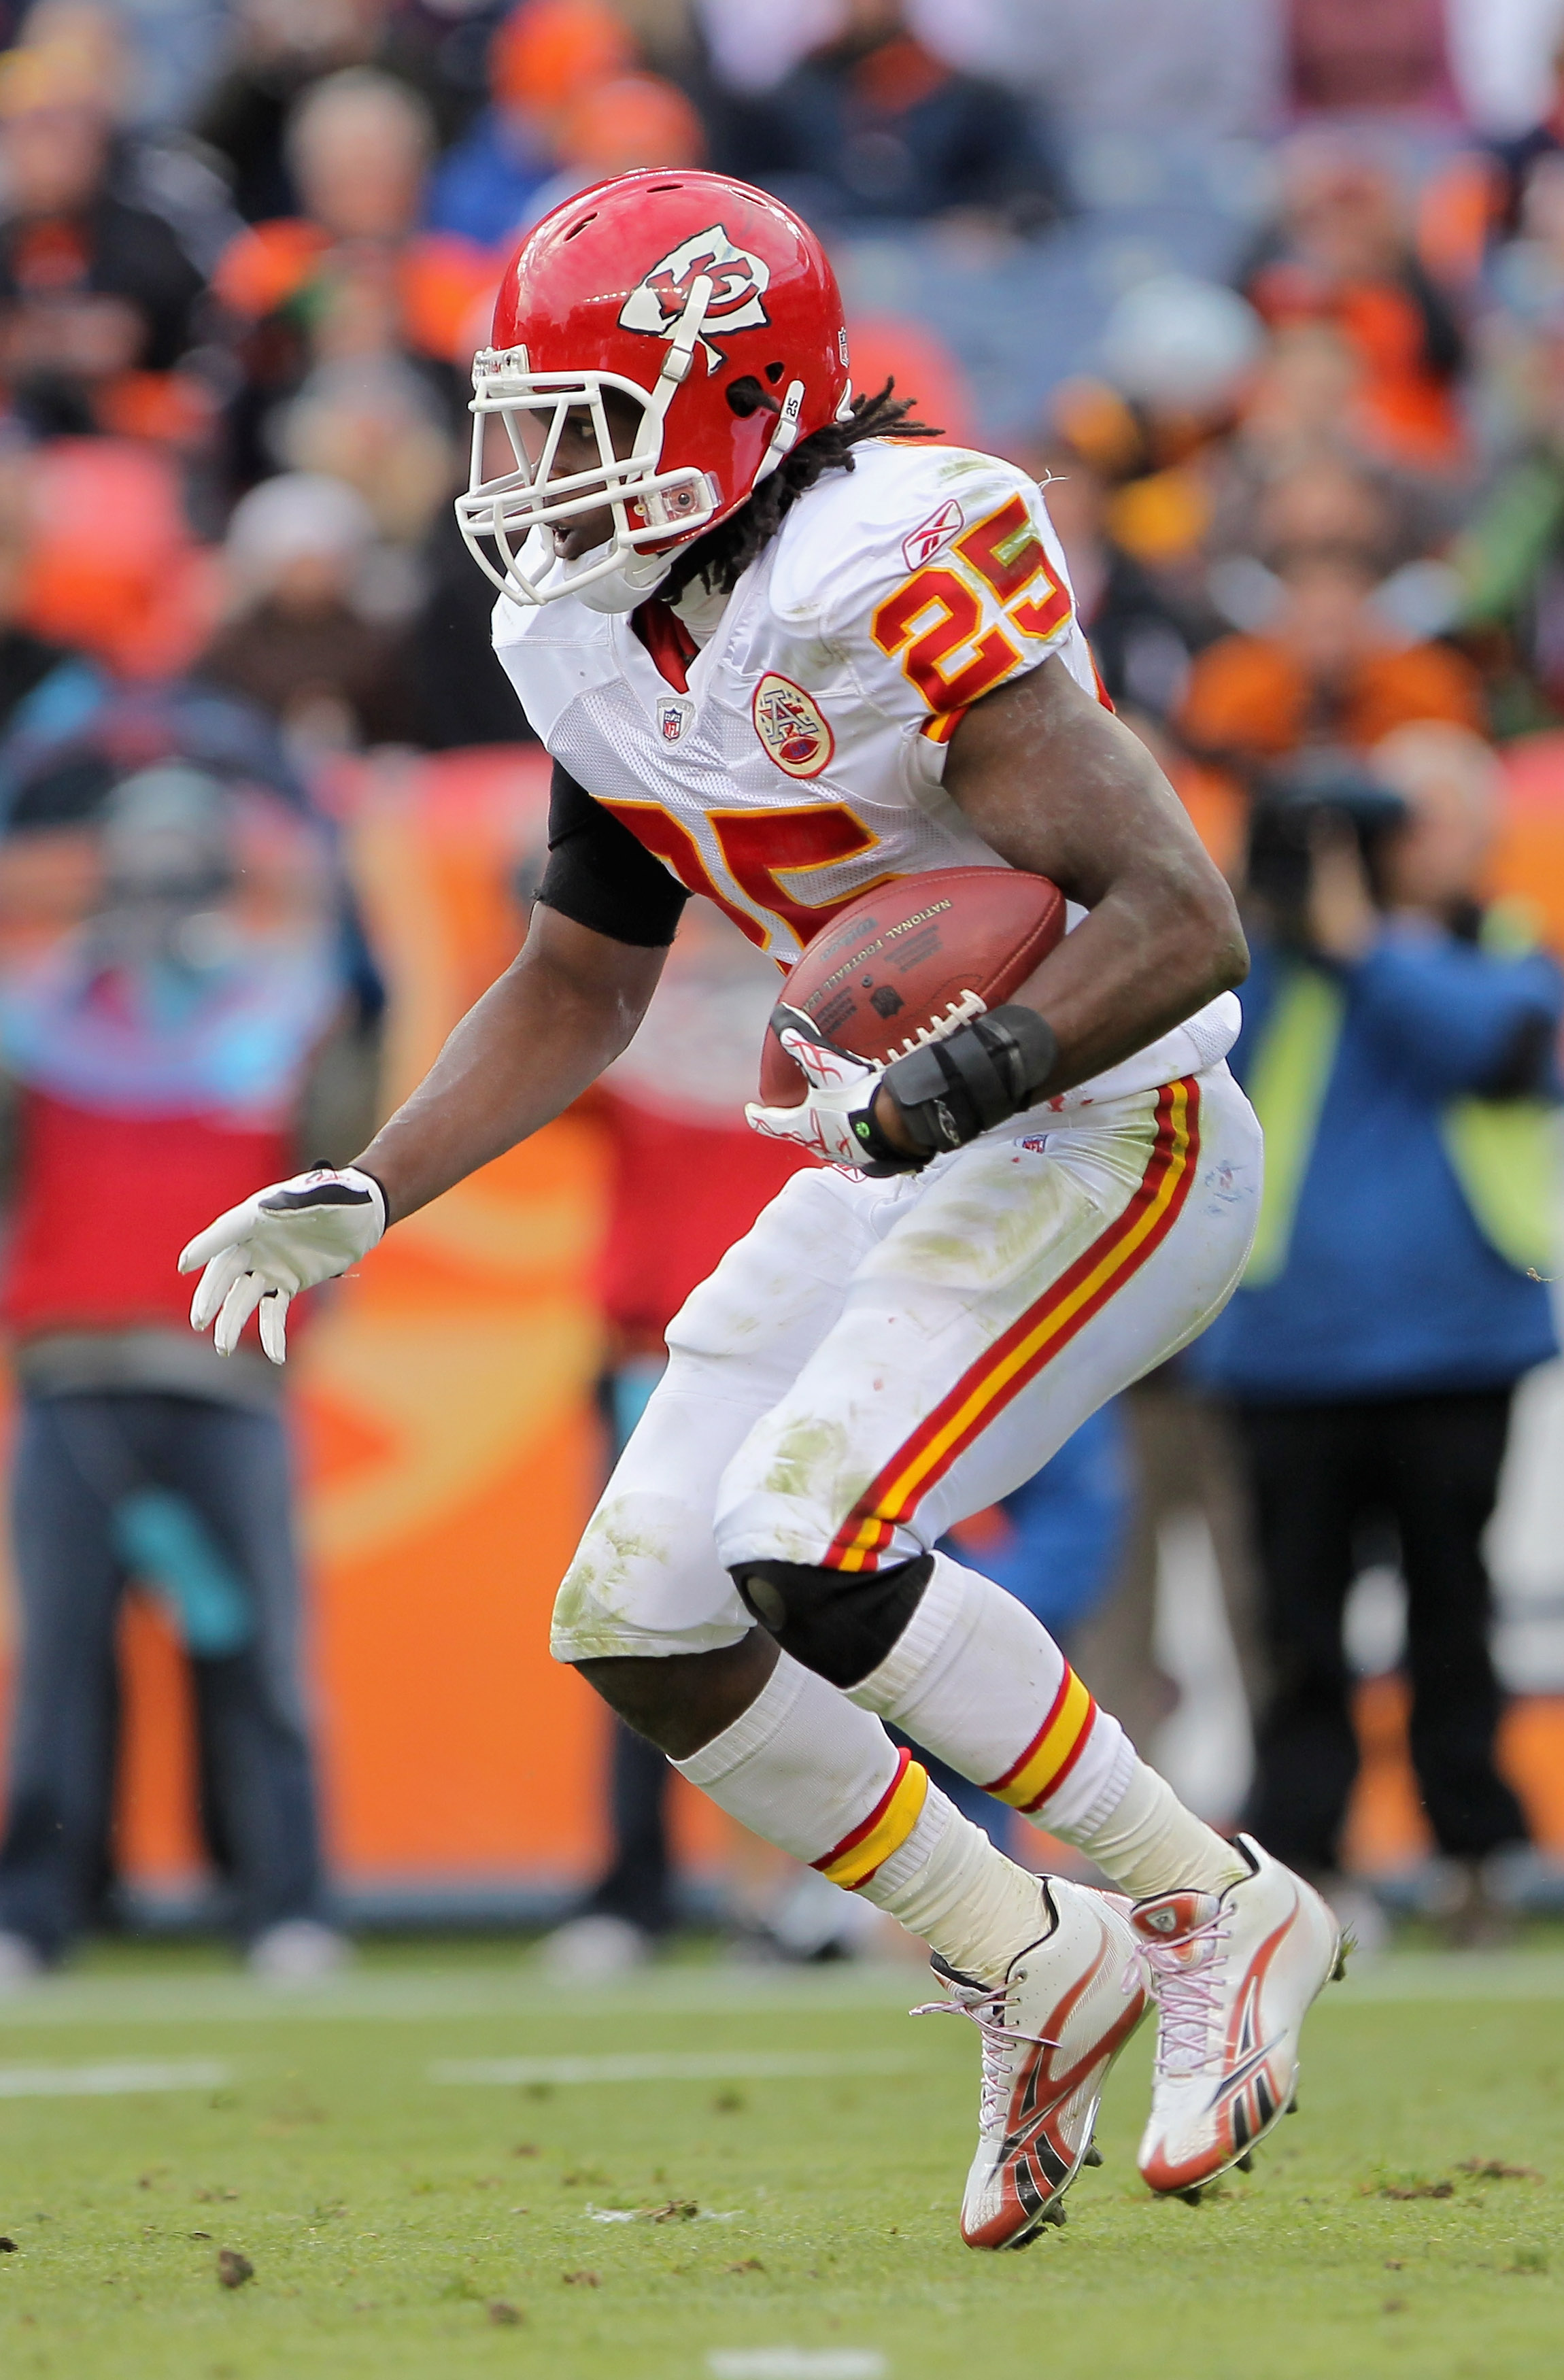 DENVER - NOVEMBER 14:  Running back Jamaal Charles #25 of the Kansas City Chiefs rushes against the Denver Broncos at INVESCO Field at Mile High on November 14, 2010 in Denver, Colorado. The Broncos defeated the Chiefs 49-29.  (Photo by Doug Pensinger/Get